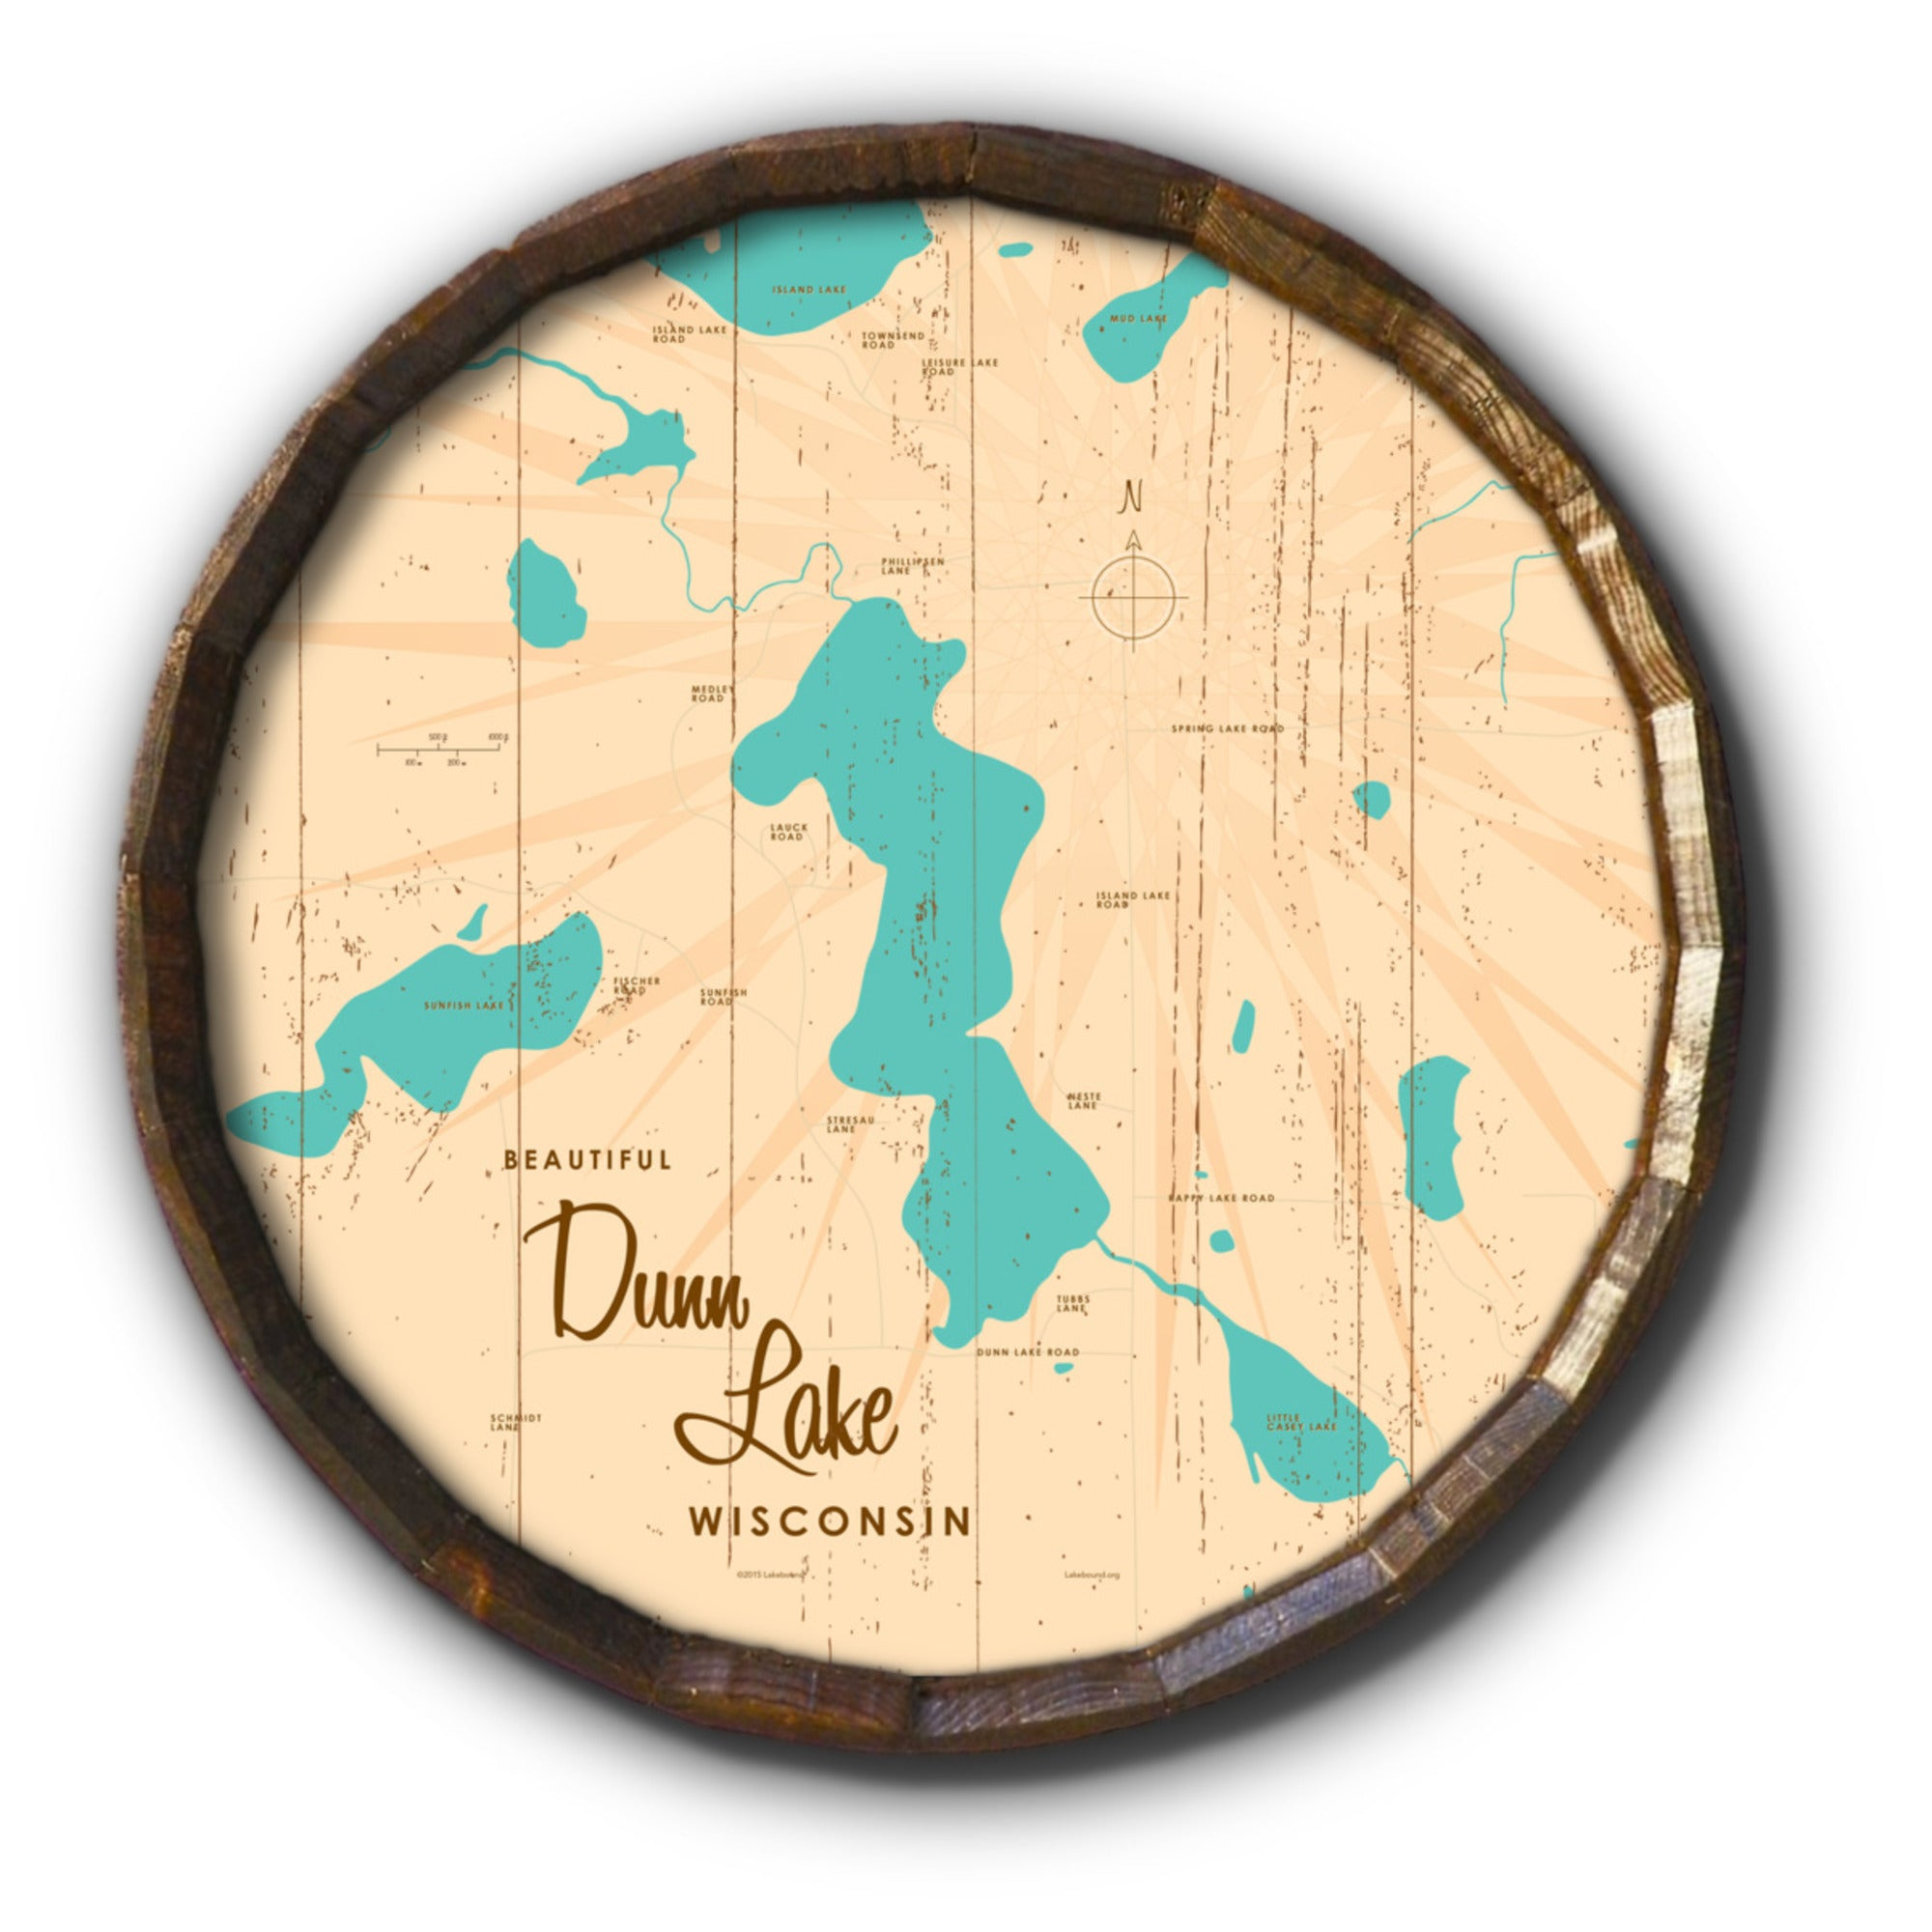 Dunn Lake Wisconsin, Rustic Barrel End Map Art